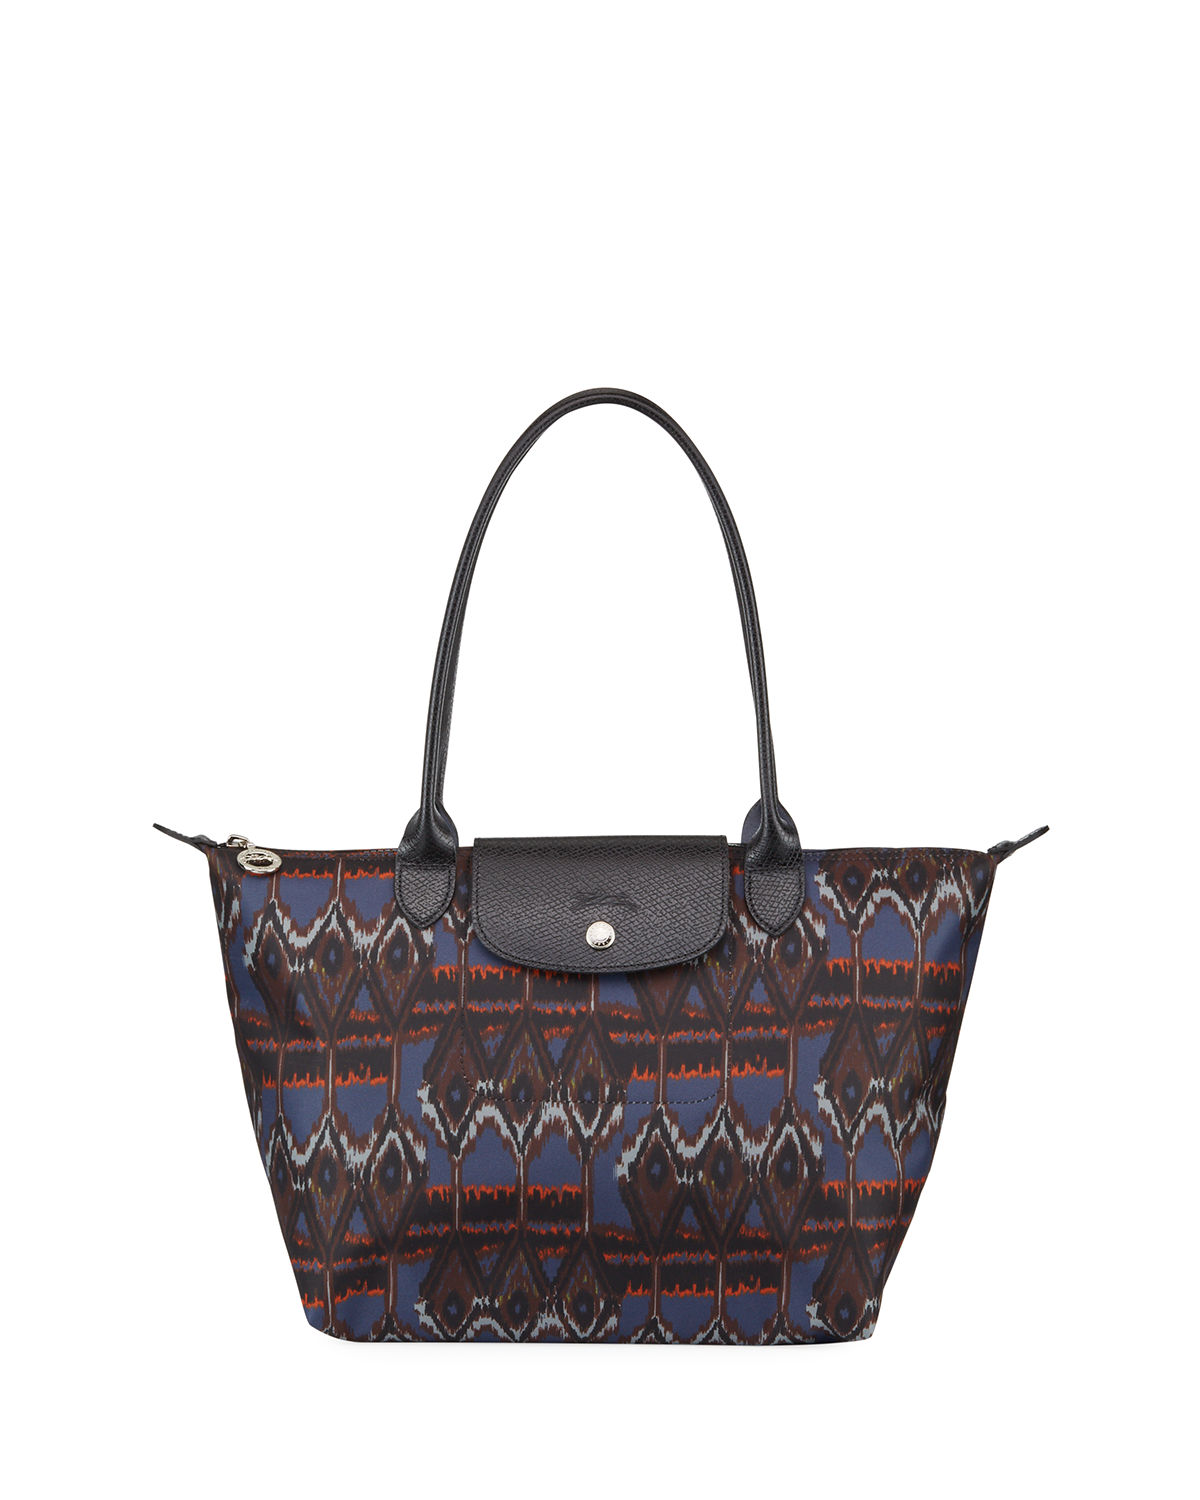 Le Pliage Ikat-Print Shoulder Tote Bag